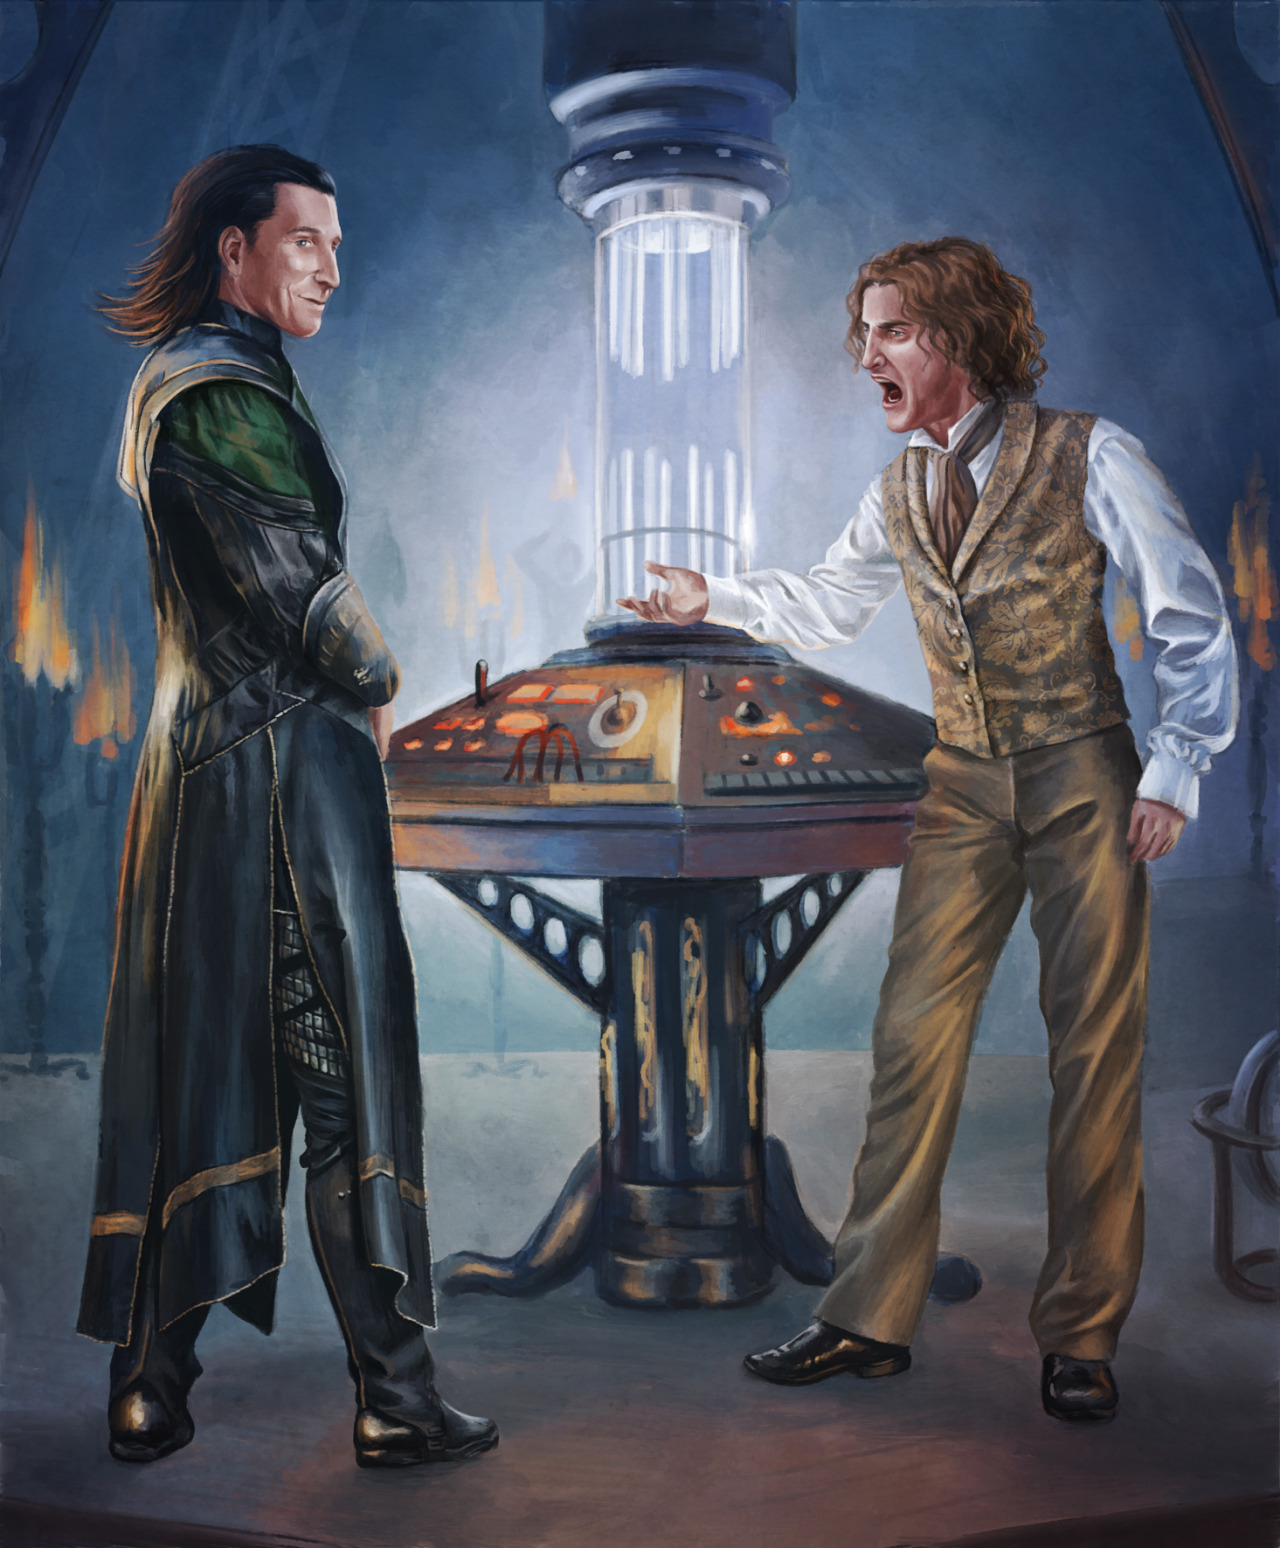 anachrophobian:  The Eighth Doctor scolding Loki, for sweetoceancloud I'd like to point out that I'm not an Avengers fan, in fact I haven't even seen the film, so I apologise if I've got Loki all wrong. Also, I have no idea what Loki would've done or what would be in character for him, but for the sake of the picture, let's just assume he fiddled with the TARDIS, sent it straight into a sun or something.  Oh oh oh oh oh now you're giving me ideas what if Tom Hiddleston and Paul McGann are in something together OMG